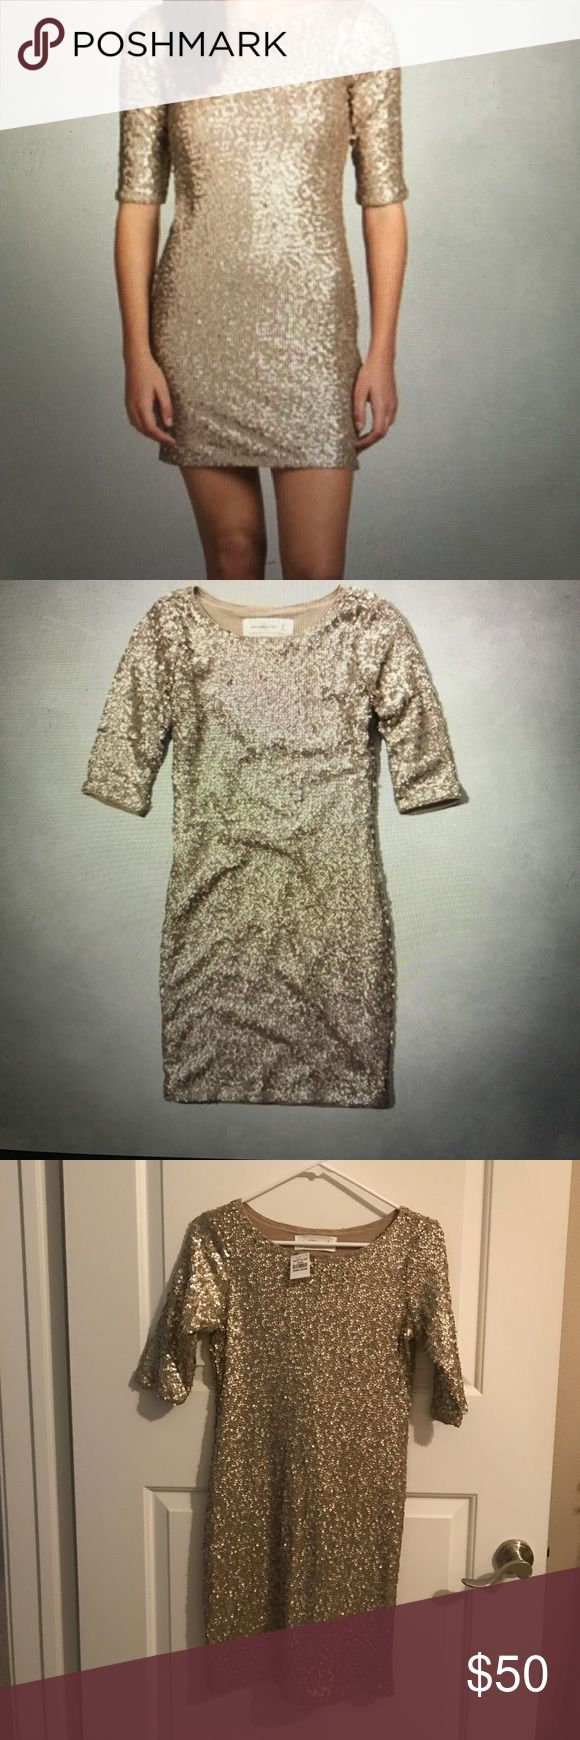 Selling this Women's Rylie Sparkling Bodycon Dress on Poshmark! My username is: fischerem. #shopmycloset #poshmark #fashion #shopping #style #forsale #Abercrombie & Fitch #Dresses & Skirts